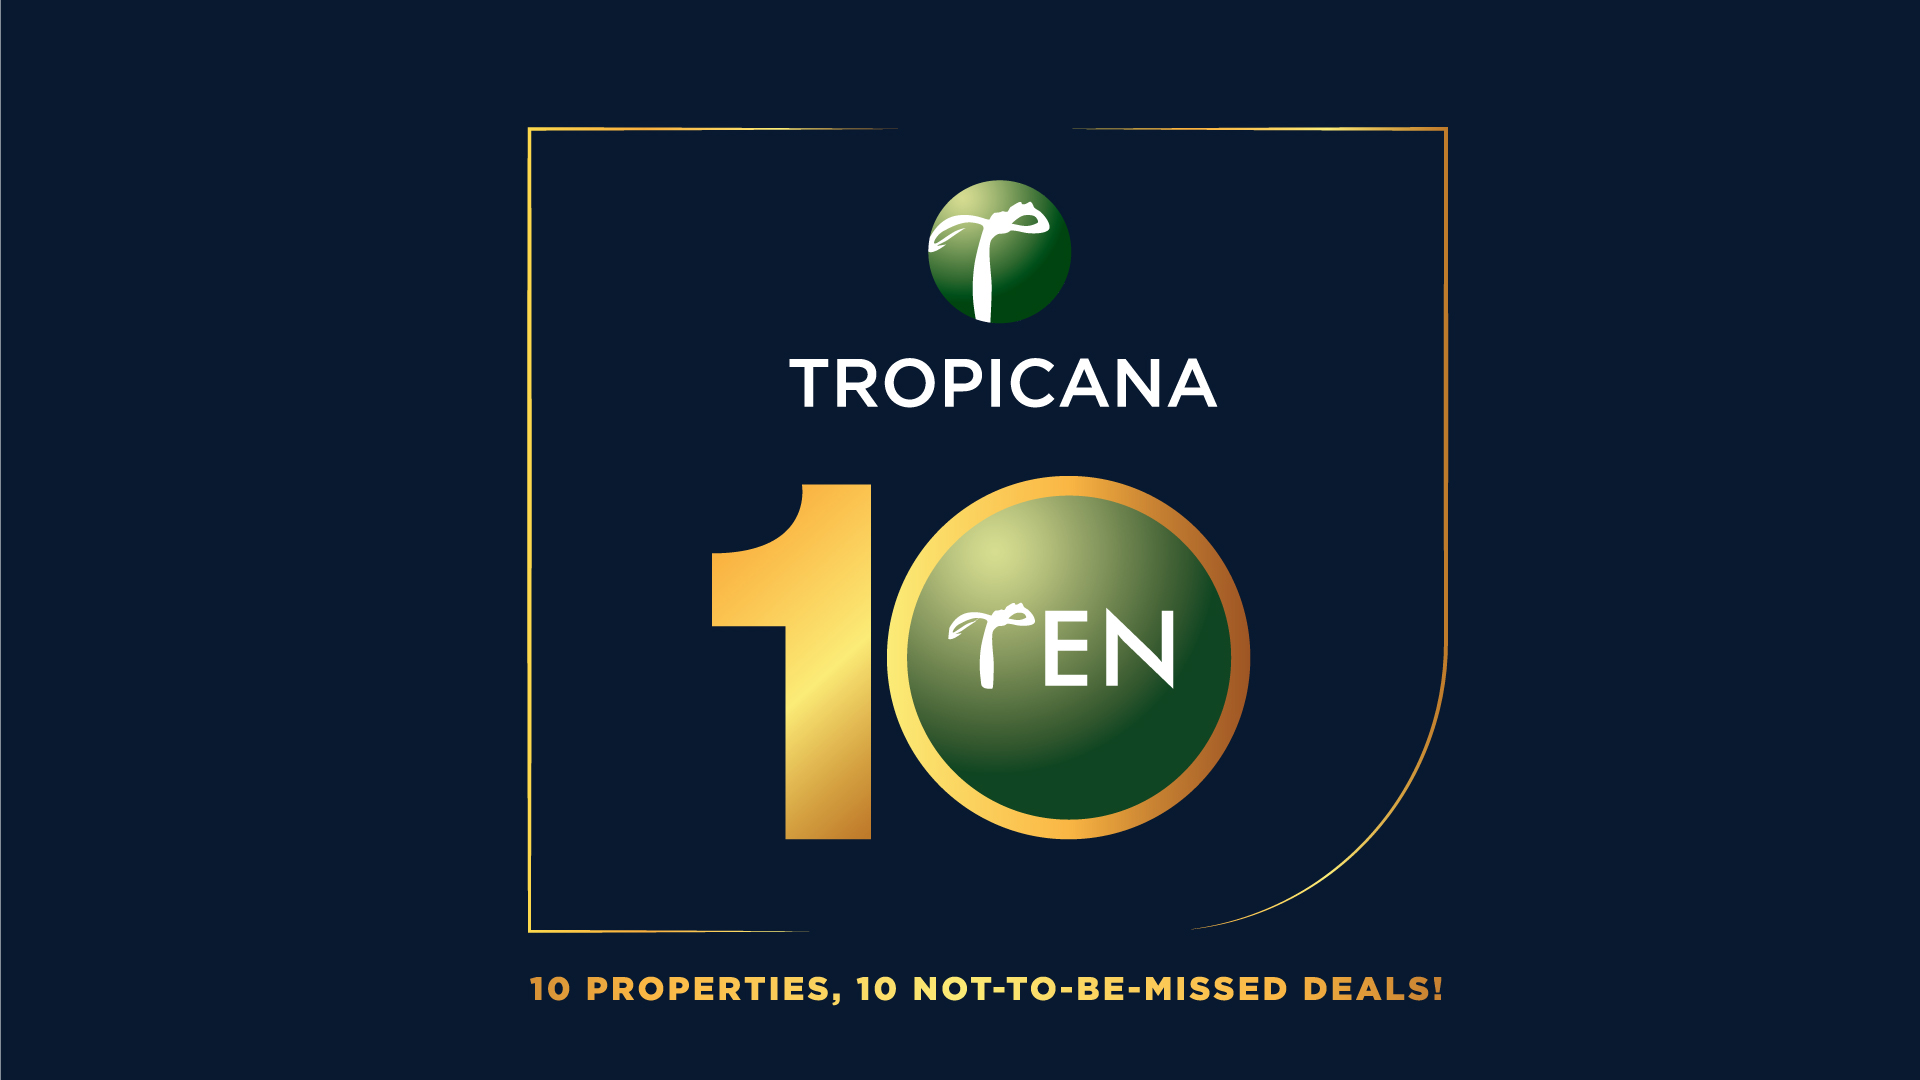 Image from Tropicana Corporation